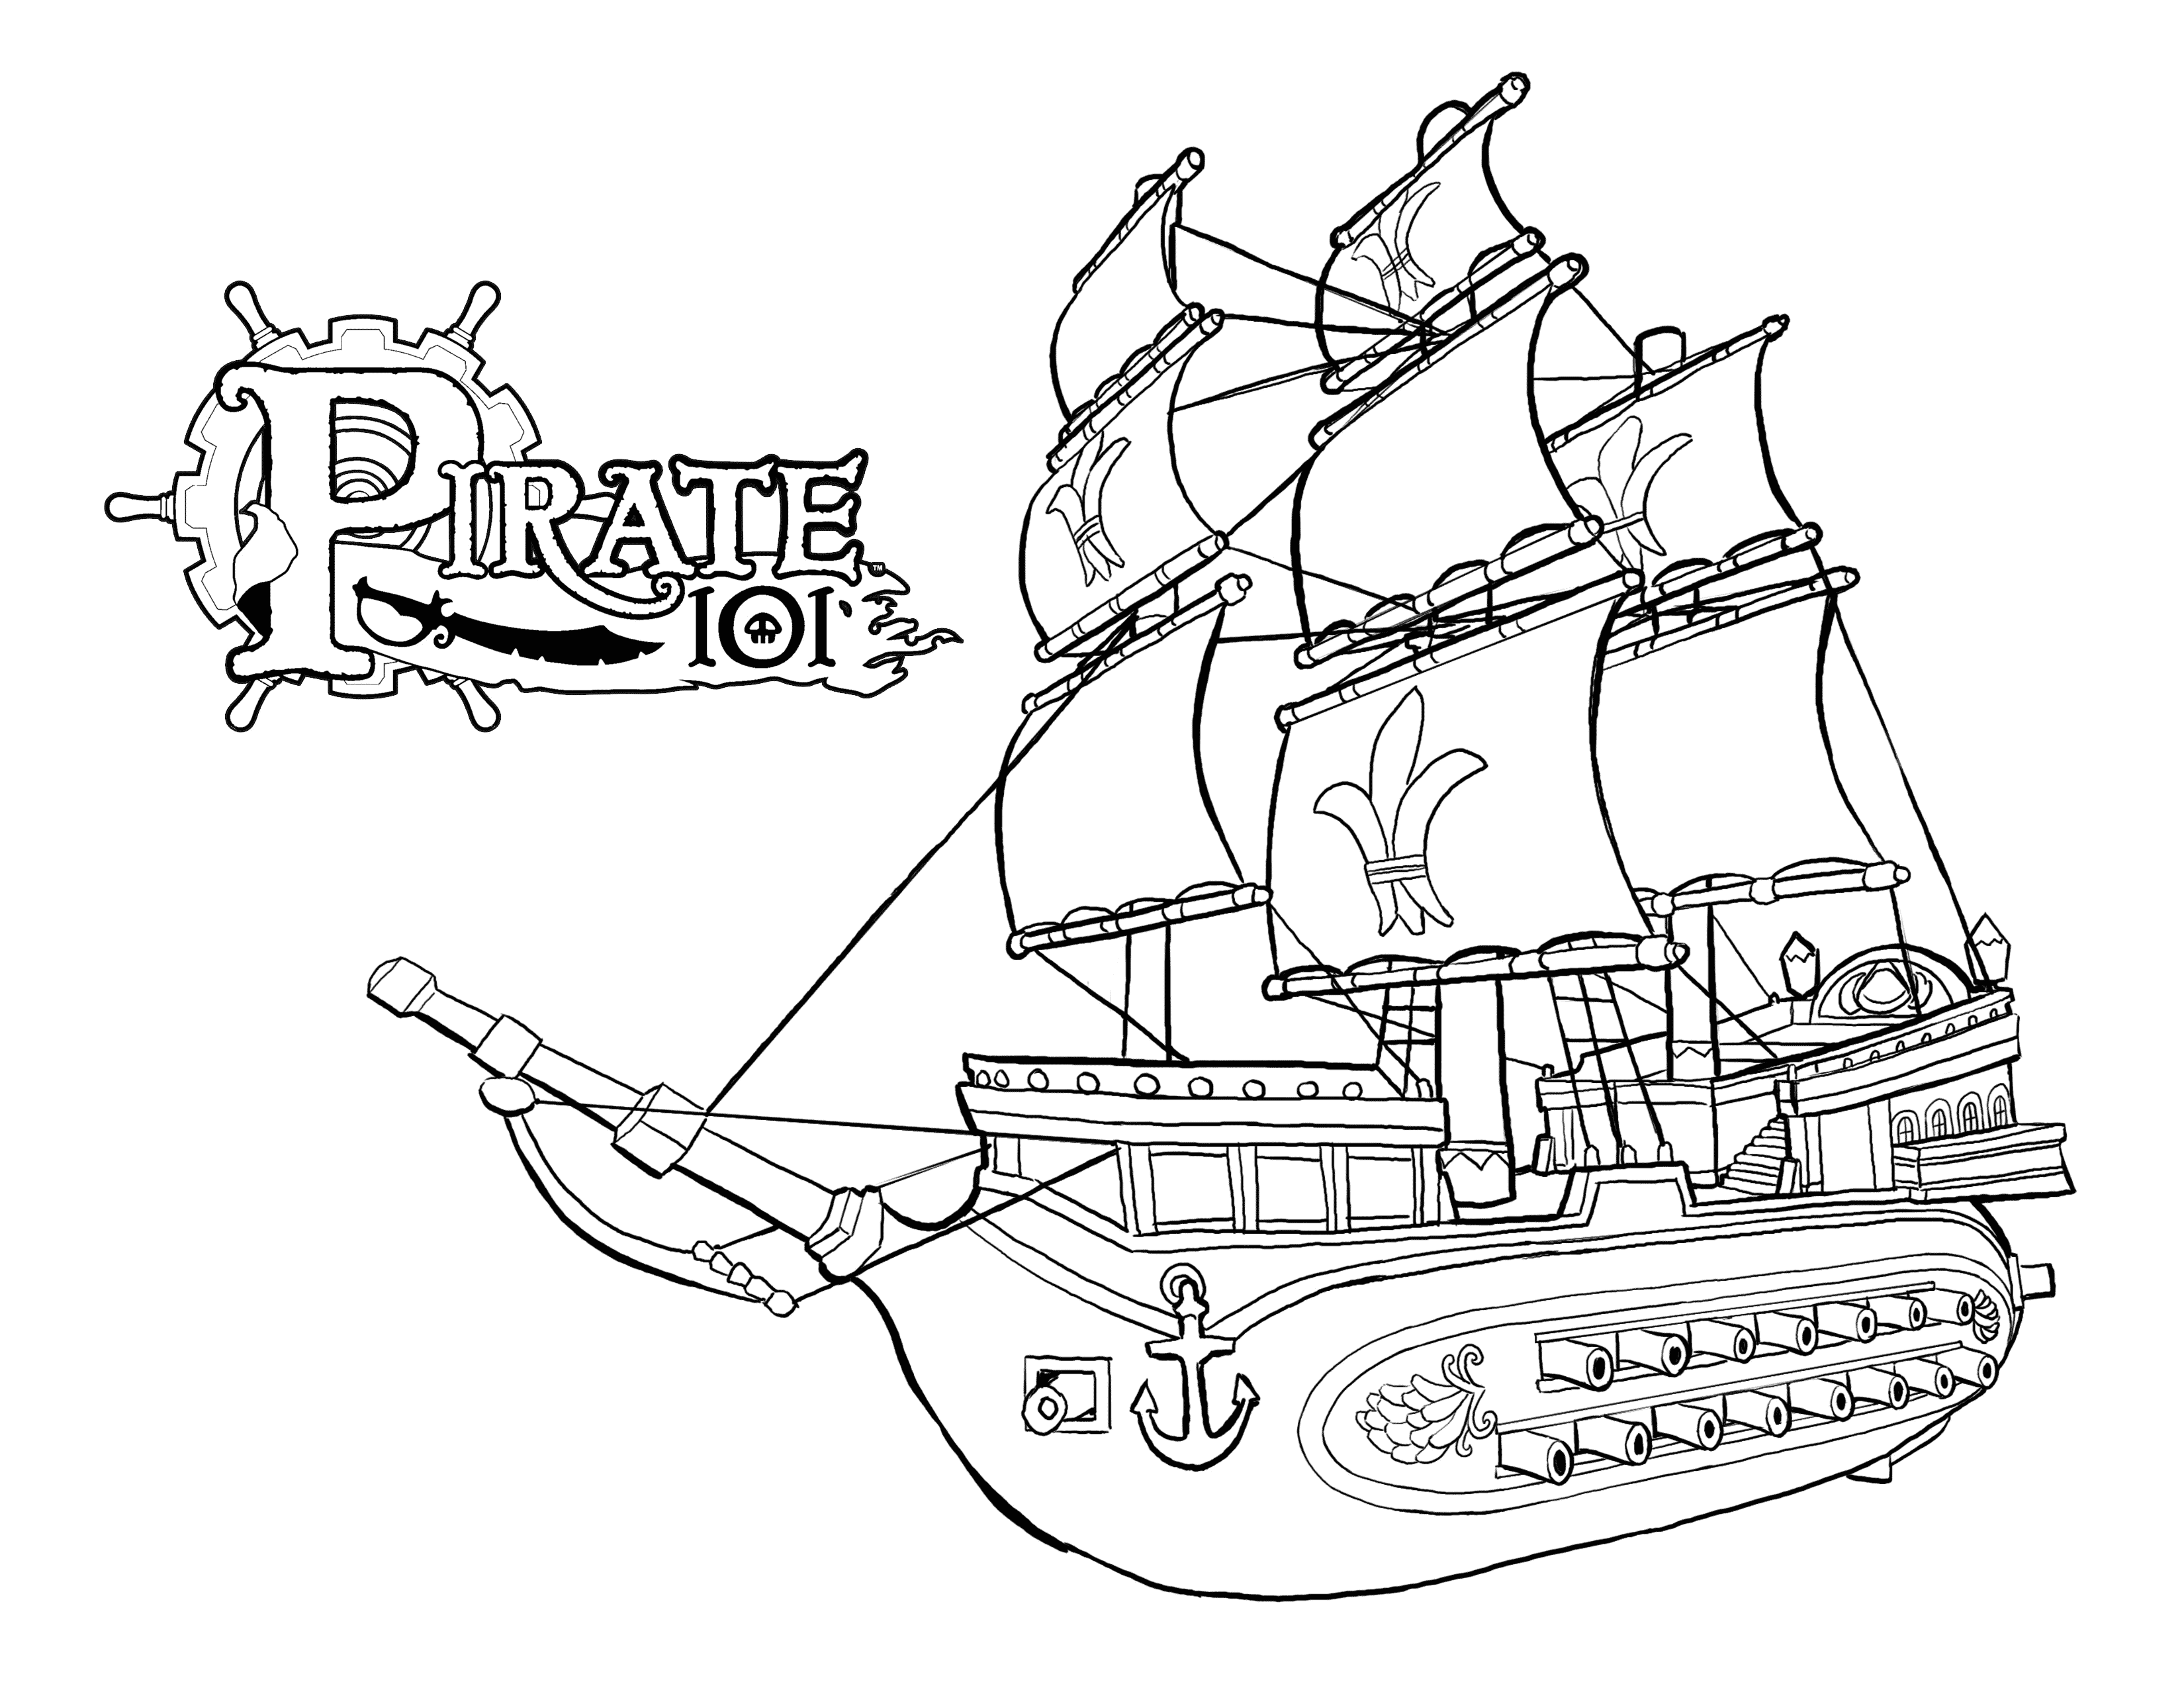 Pirate Coloring Pages Free Printable At Getdrawings Com Free For